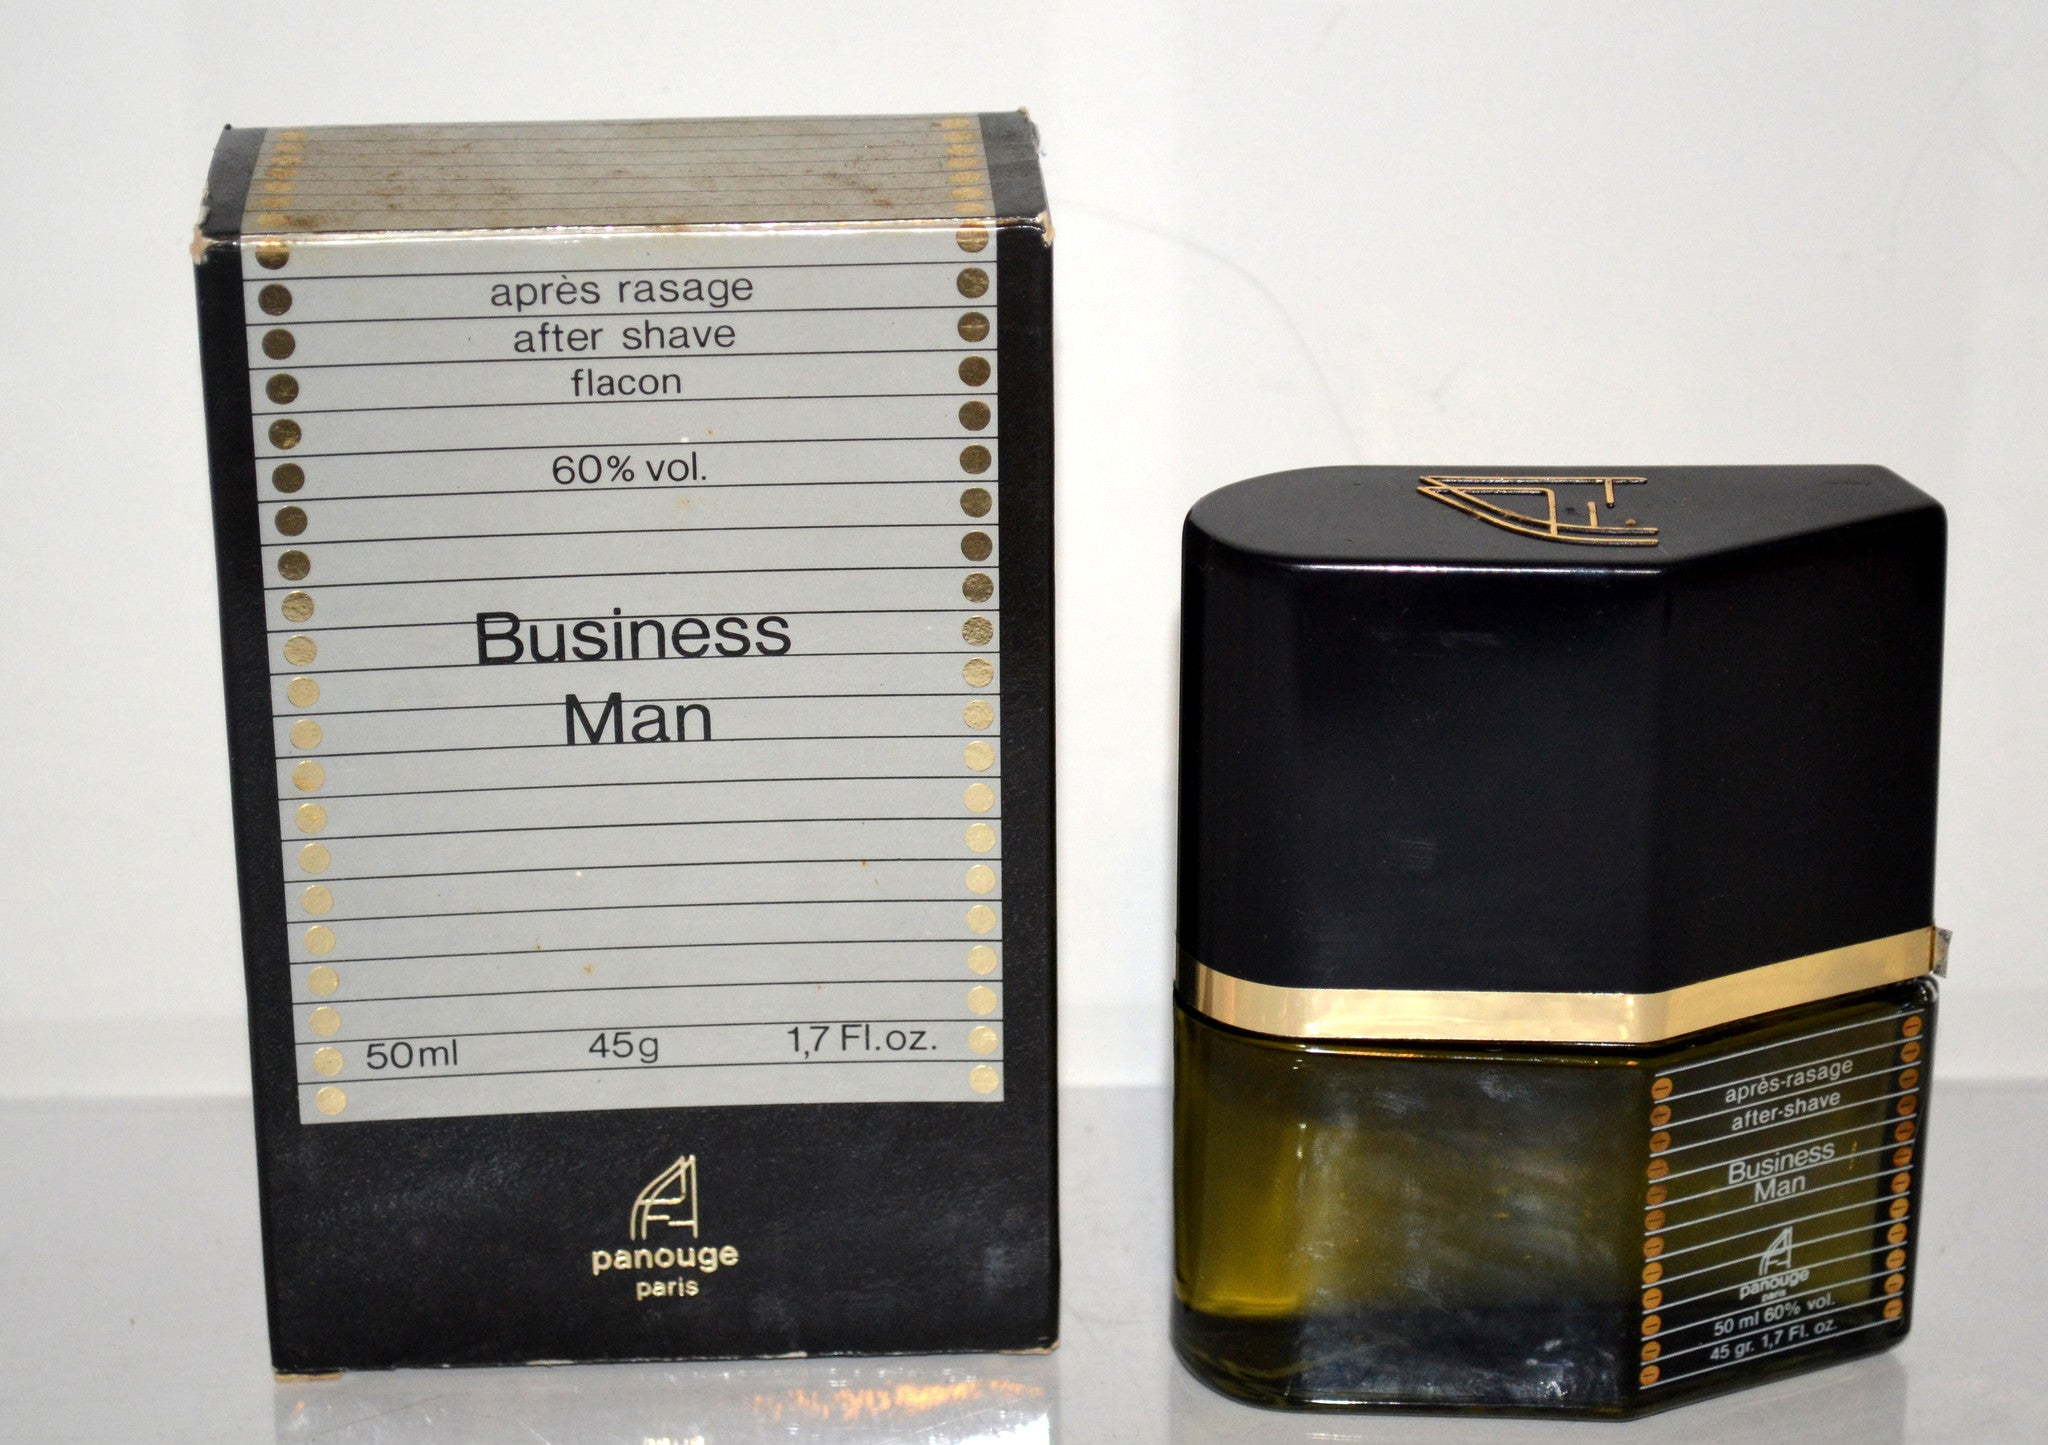 Panouge Business Man After Shave